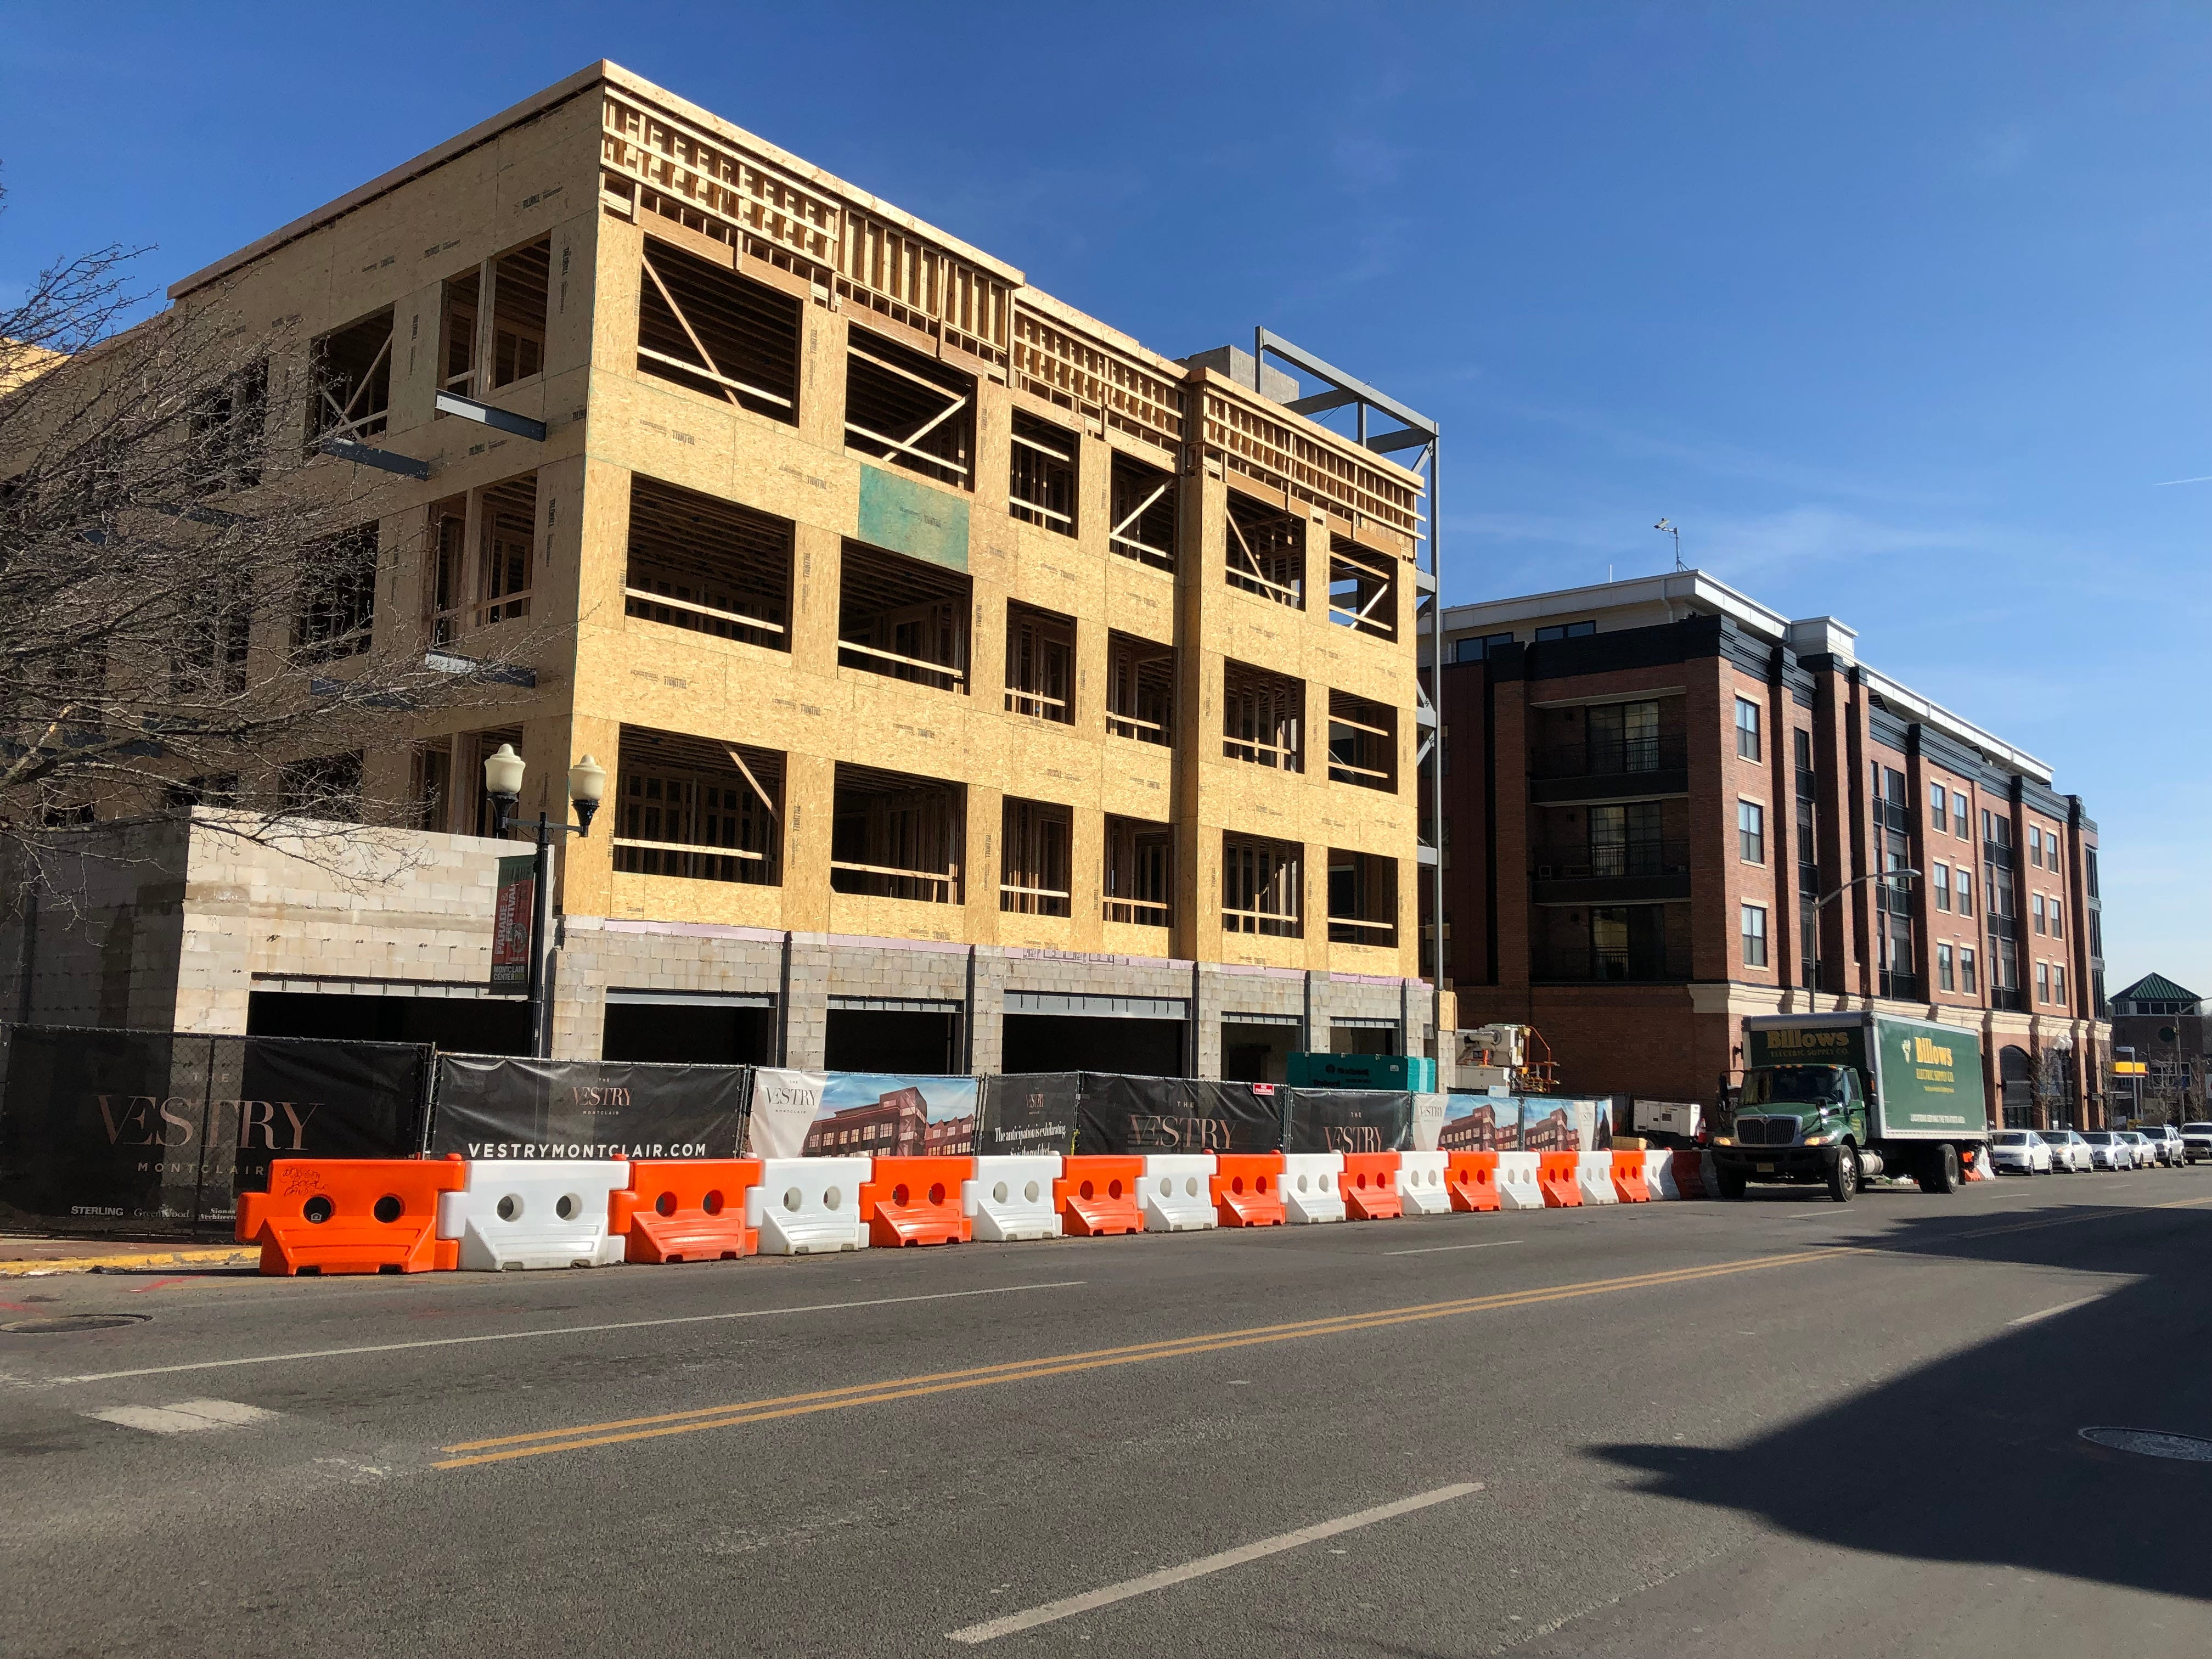 Just south of Lackawanna Station on Bloomfield Avenue is The Vestry. It will have 46 apartments and 1,684 square feet of retail space when completed.